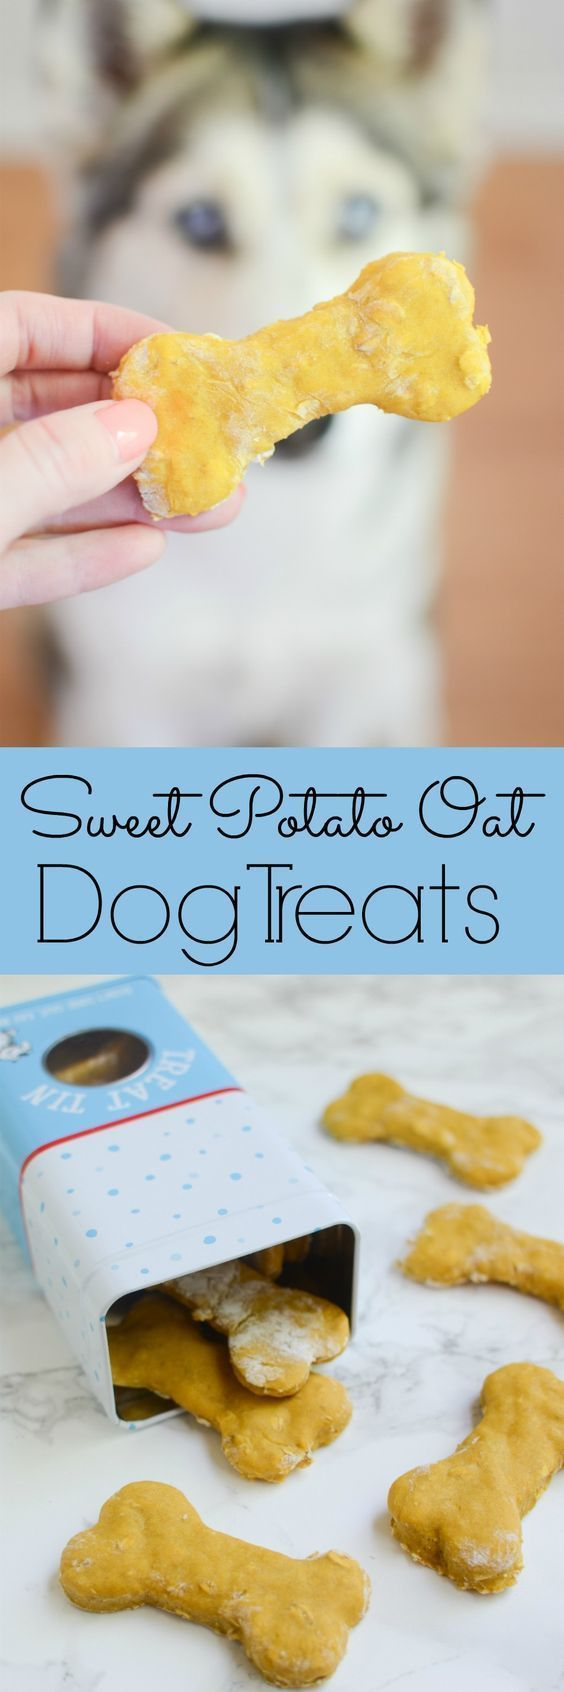 Homemade Sweet Potato Oat Dog Treats - your pup will love these nutritious treats!